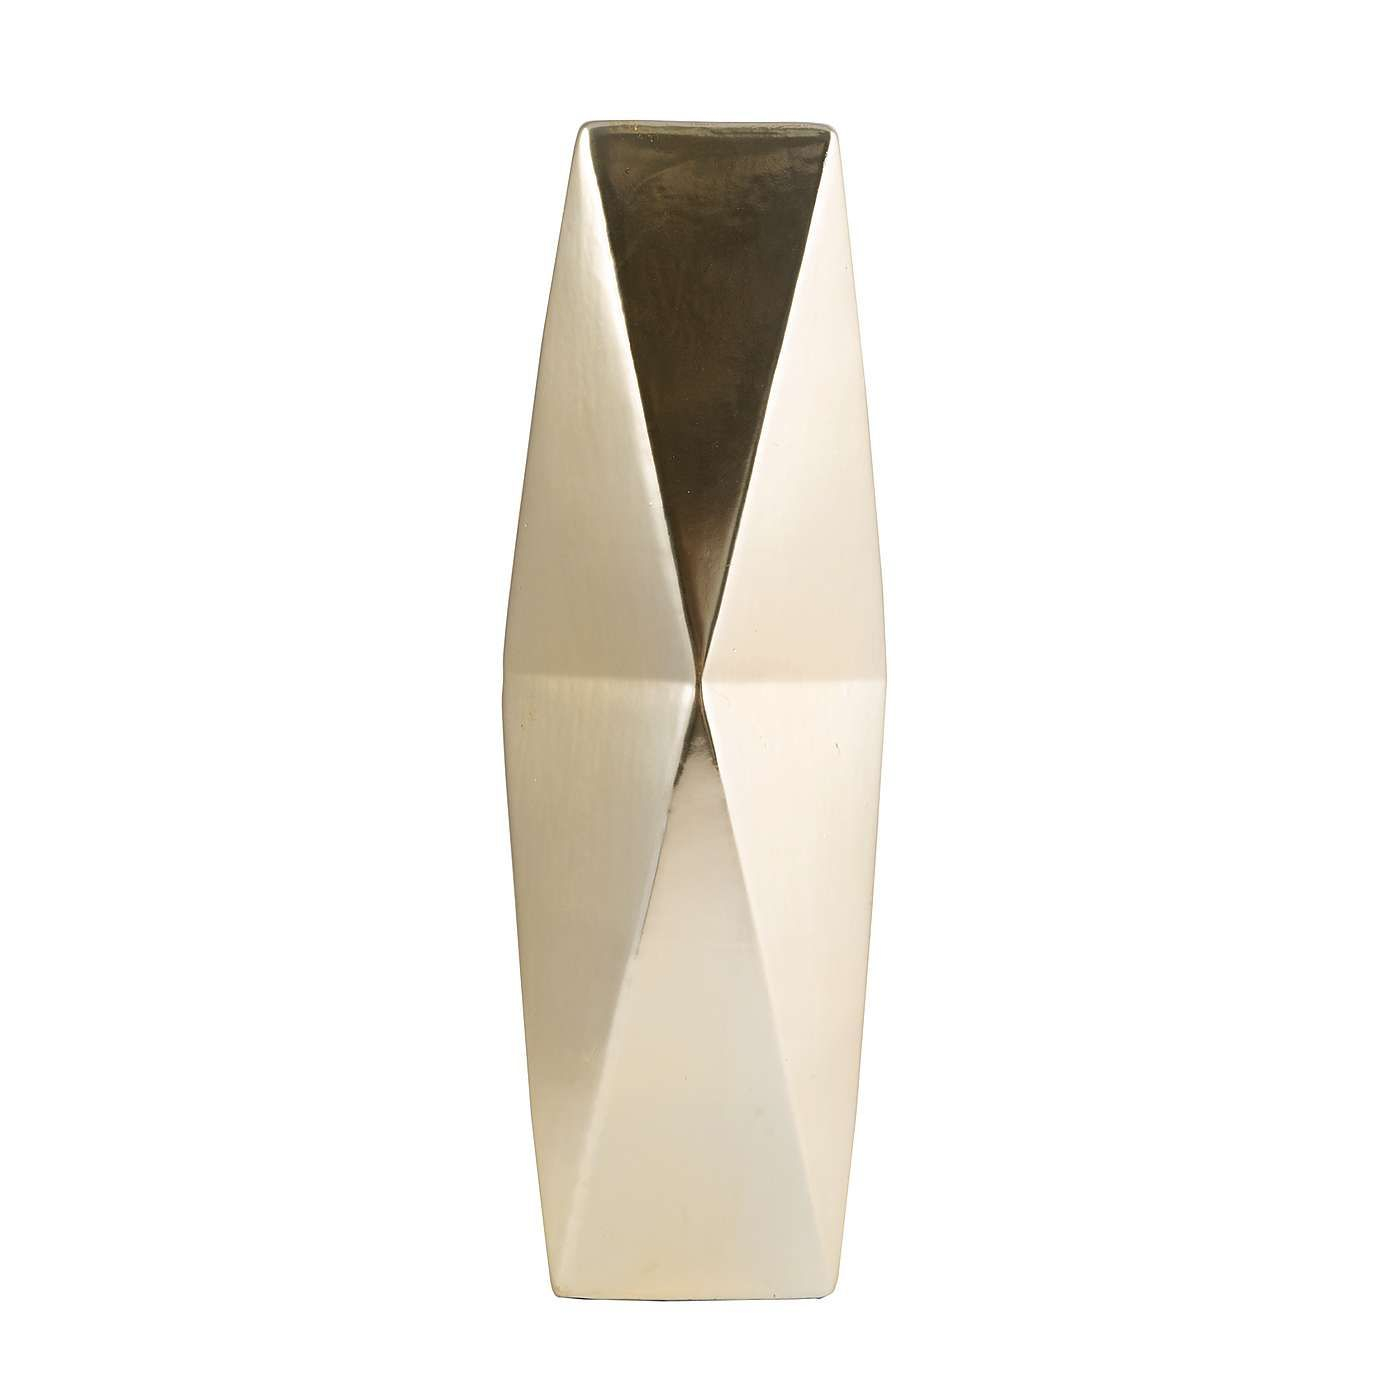 Gold Geometric Vase Dunelm Vase Crafts Vase Vase Shapes regarding sizing 1389 X 1389